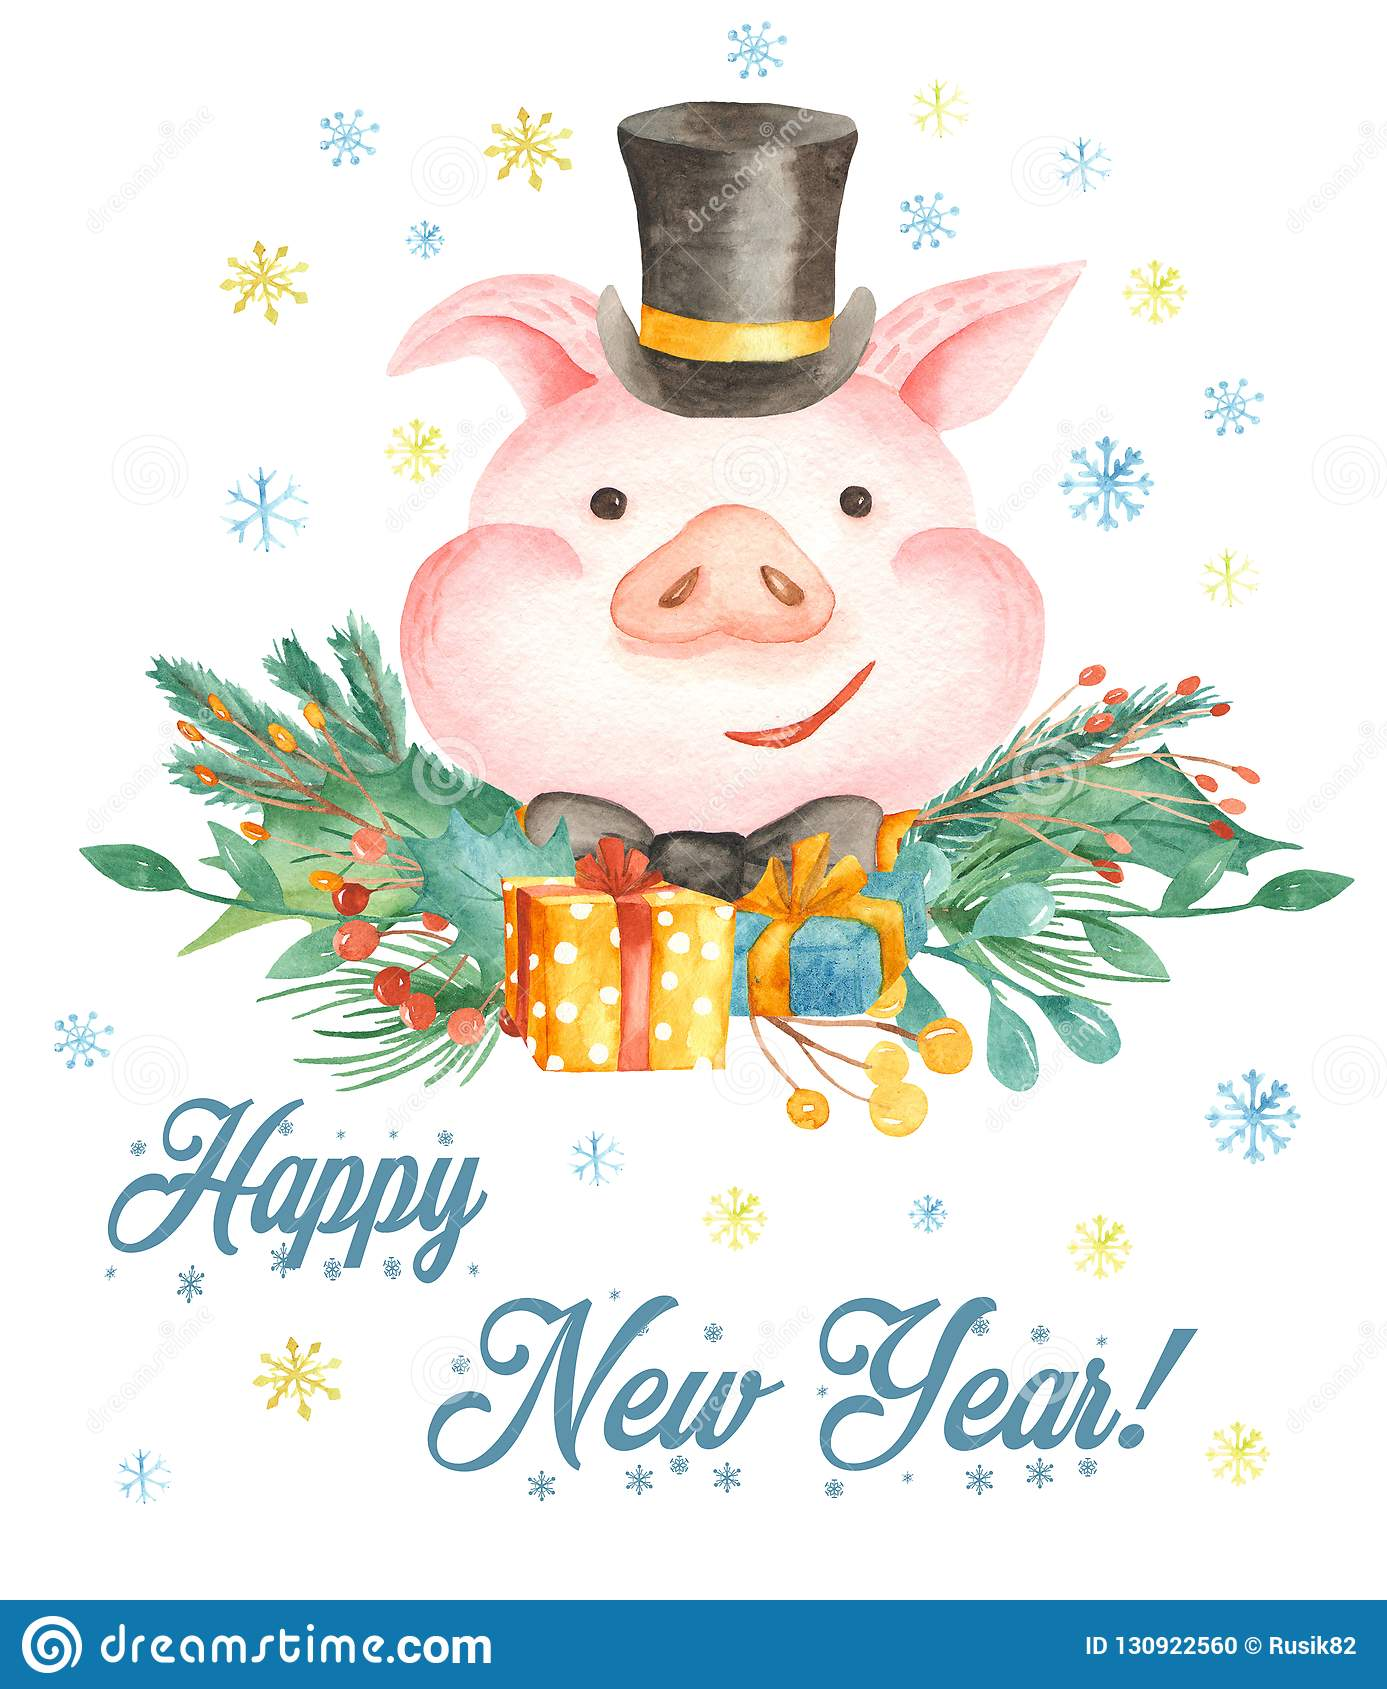 Watercolor Christmas Card With Cute Cartoon Pig. Symbol Of The Year ...